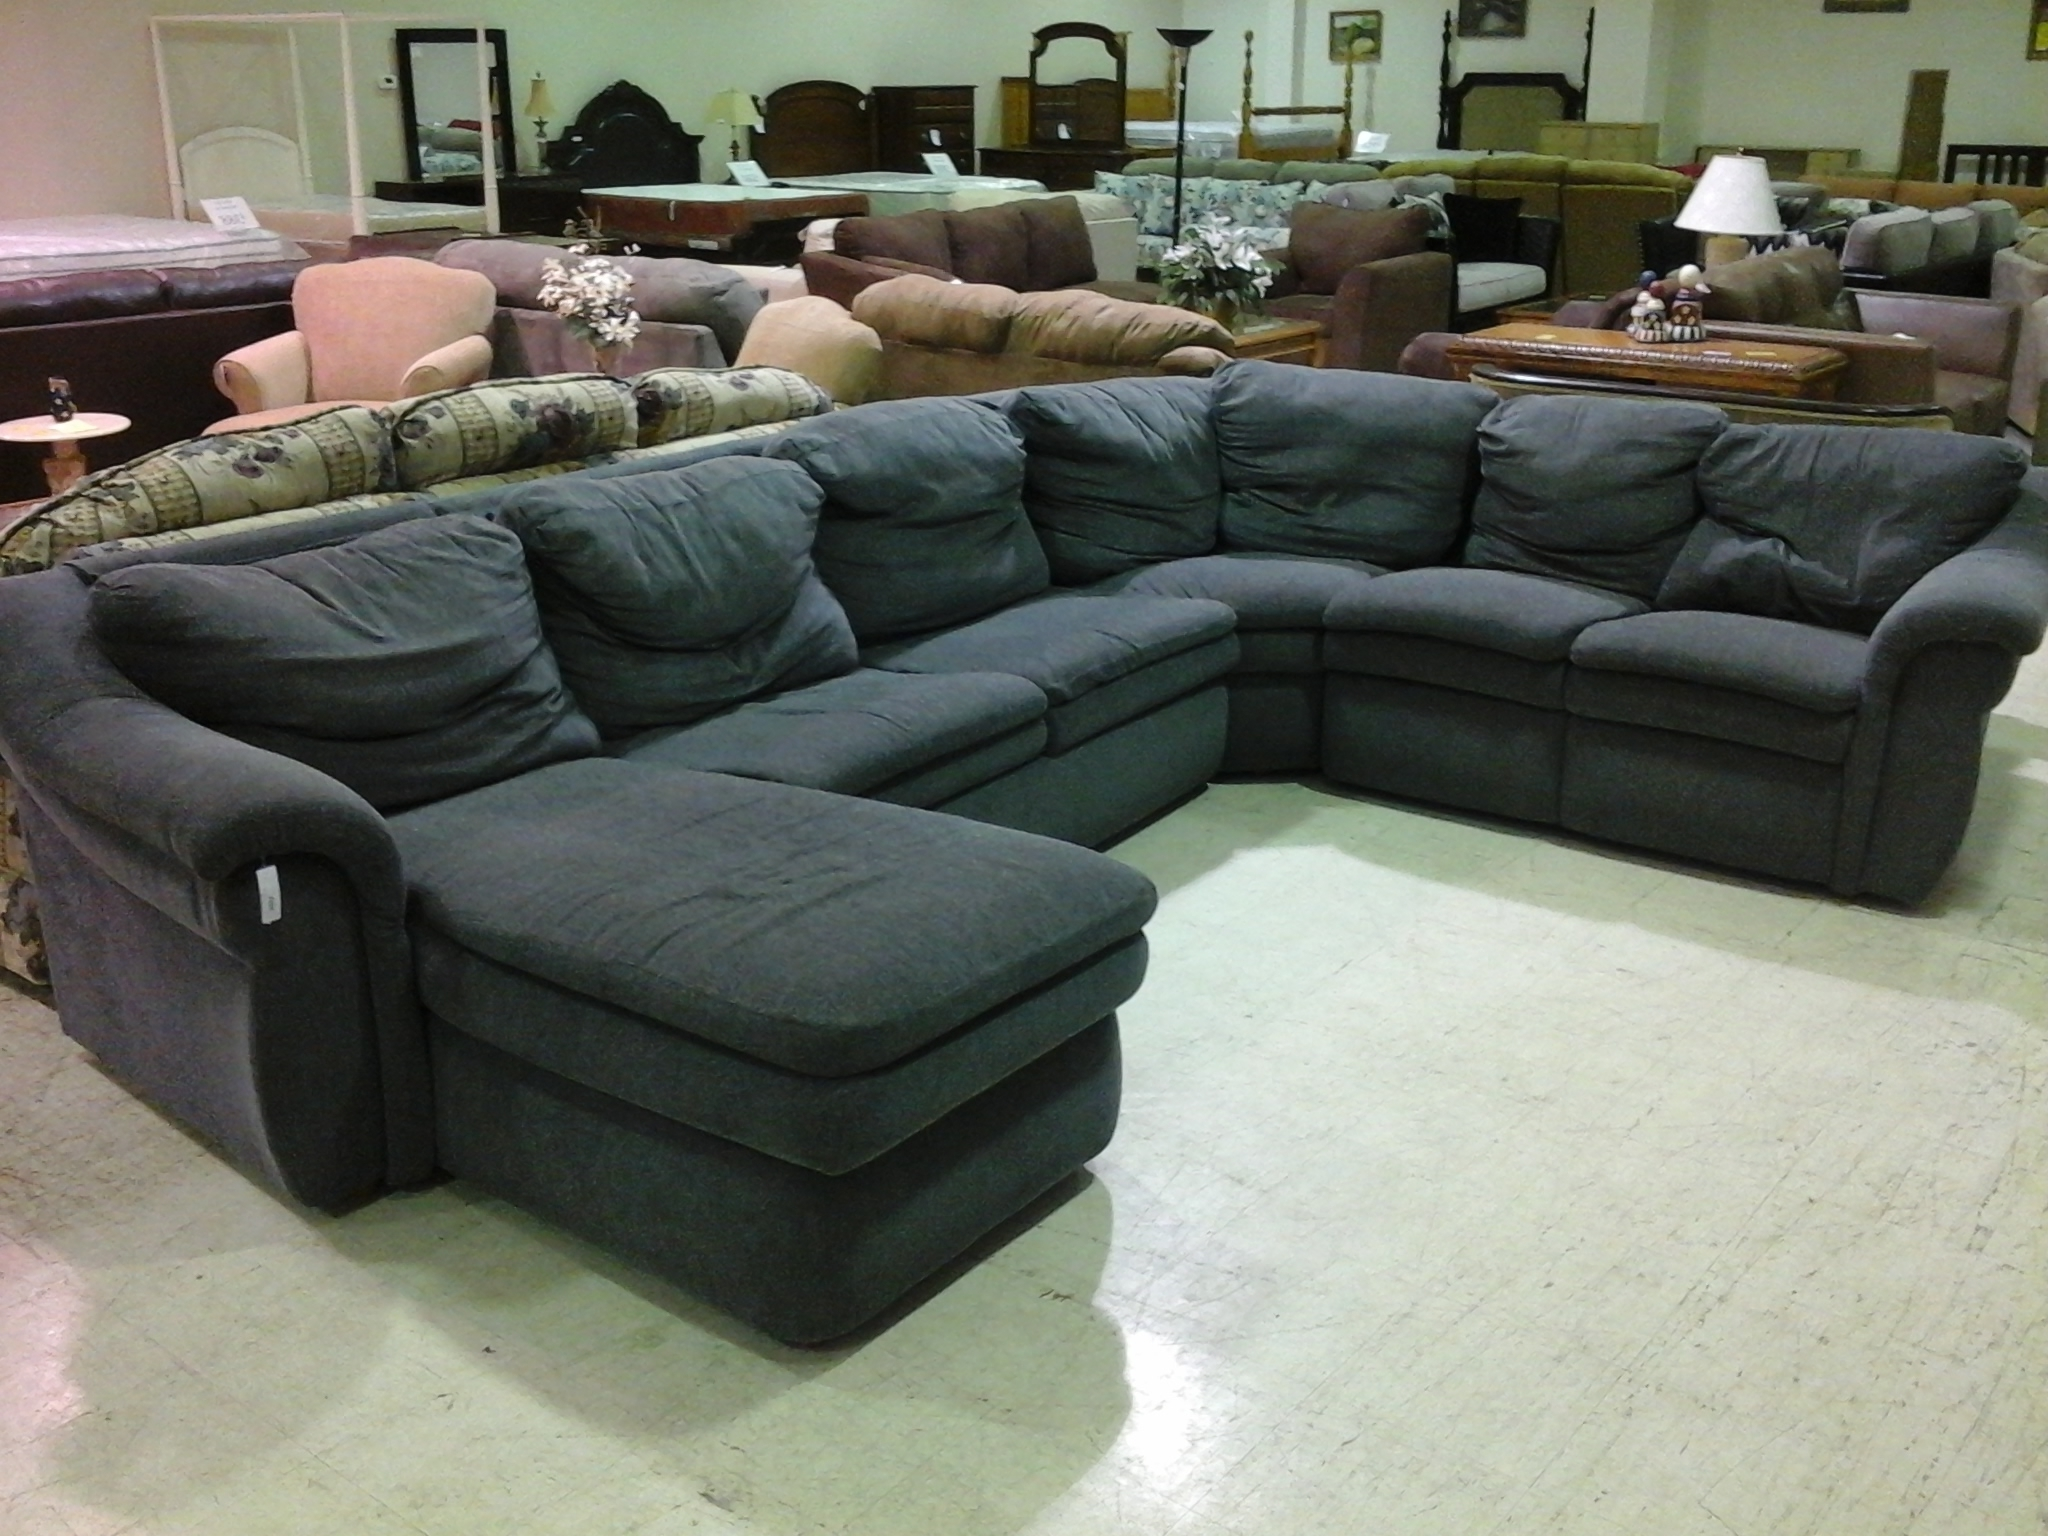 Microfiber Sectional Sofa With Sleeper Httpml2R Com Pinterest Throughout Current Ontario Canada Sectional Sofas (View 8 of 20)